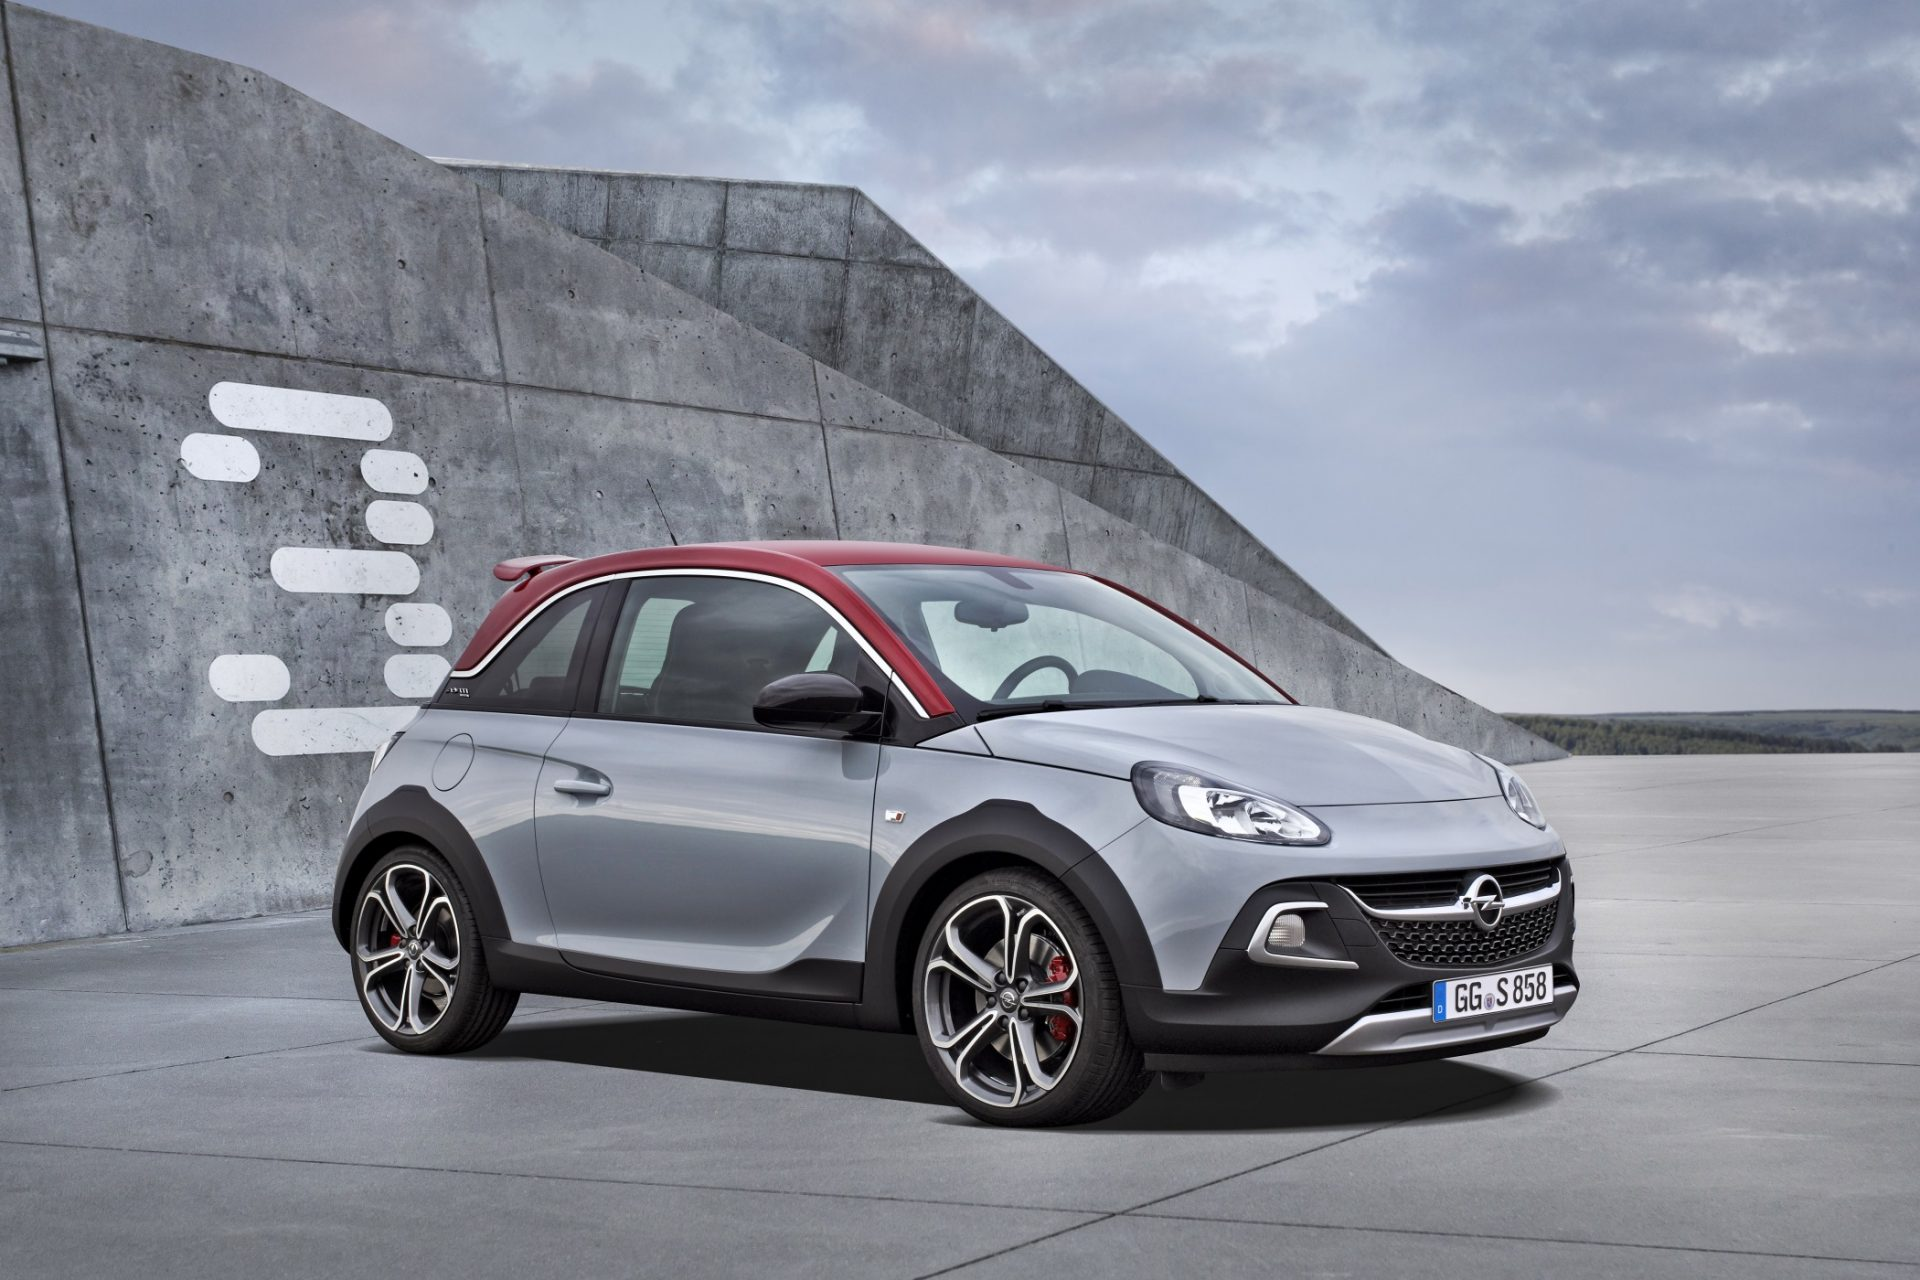 opel adam rocks s weil autos einfach spa machen. Black Bedroom Furniture Sets. Home Design Ideas